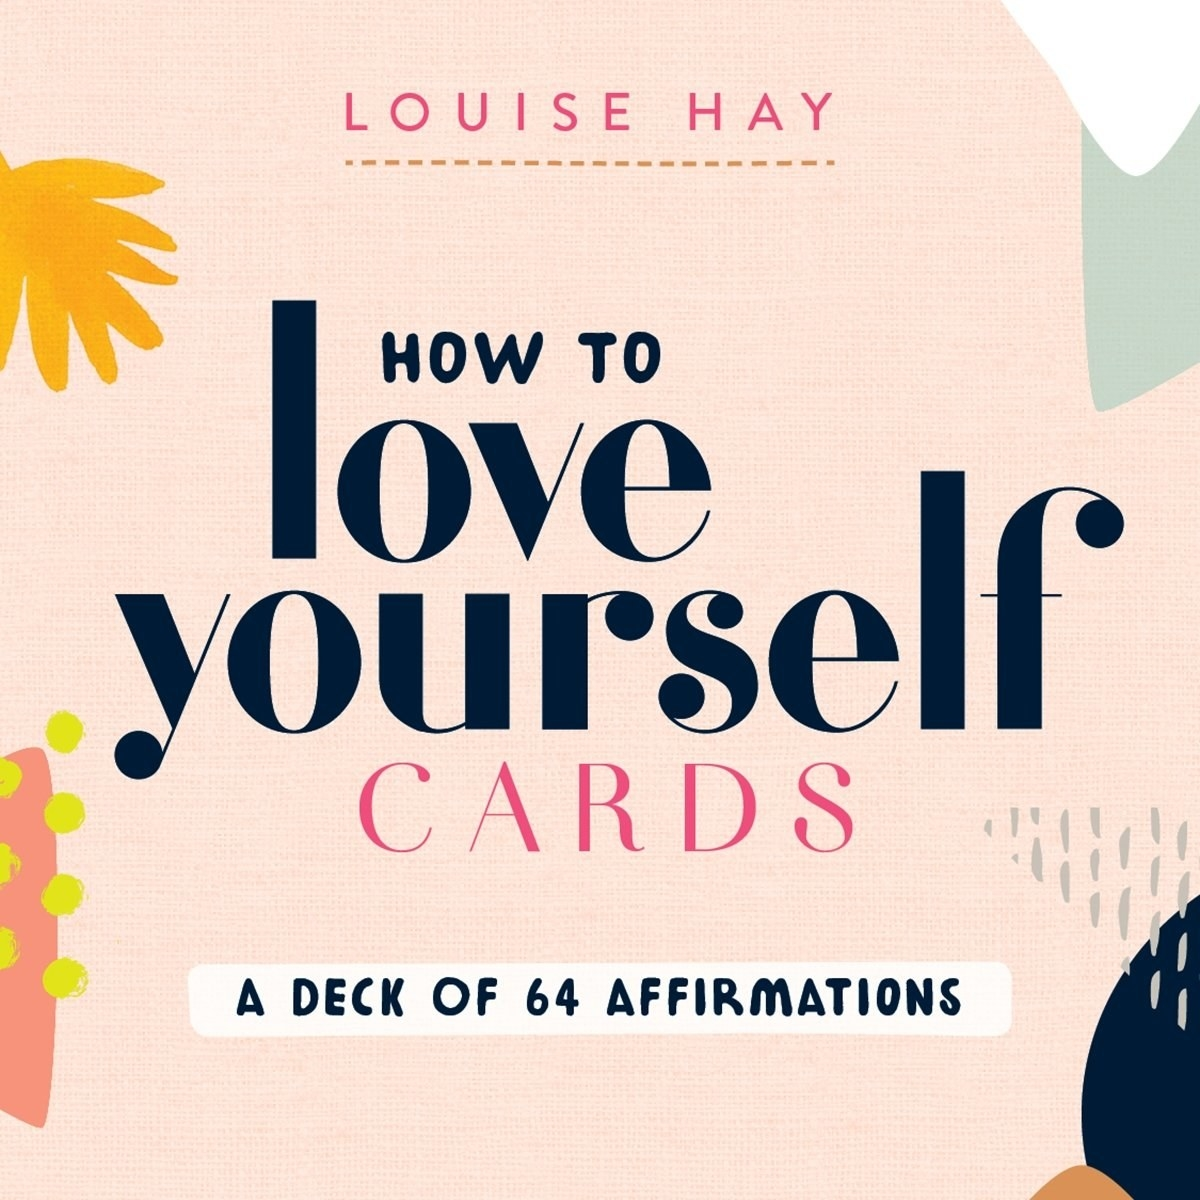 The How to Love Yourself Cards: A Deck of 64 Affirmations